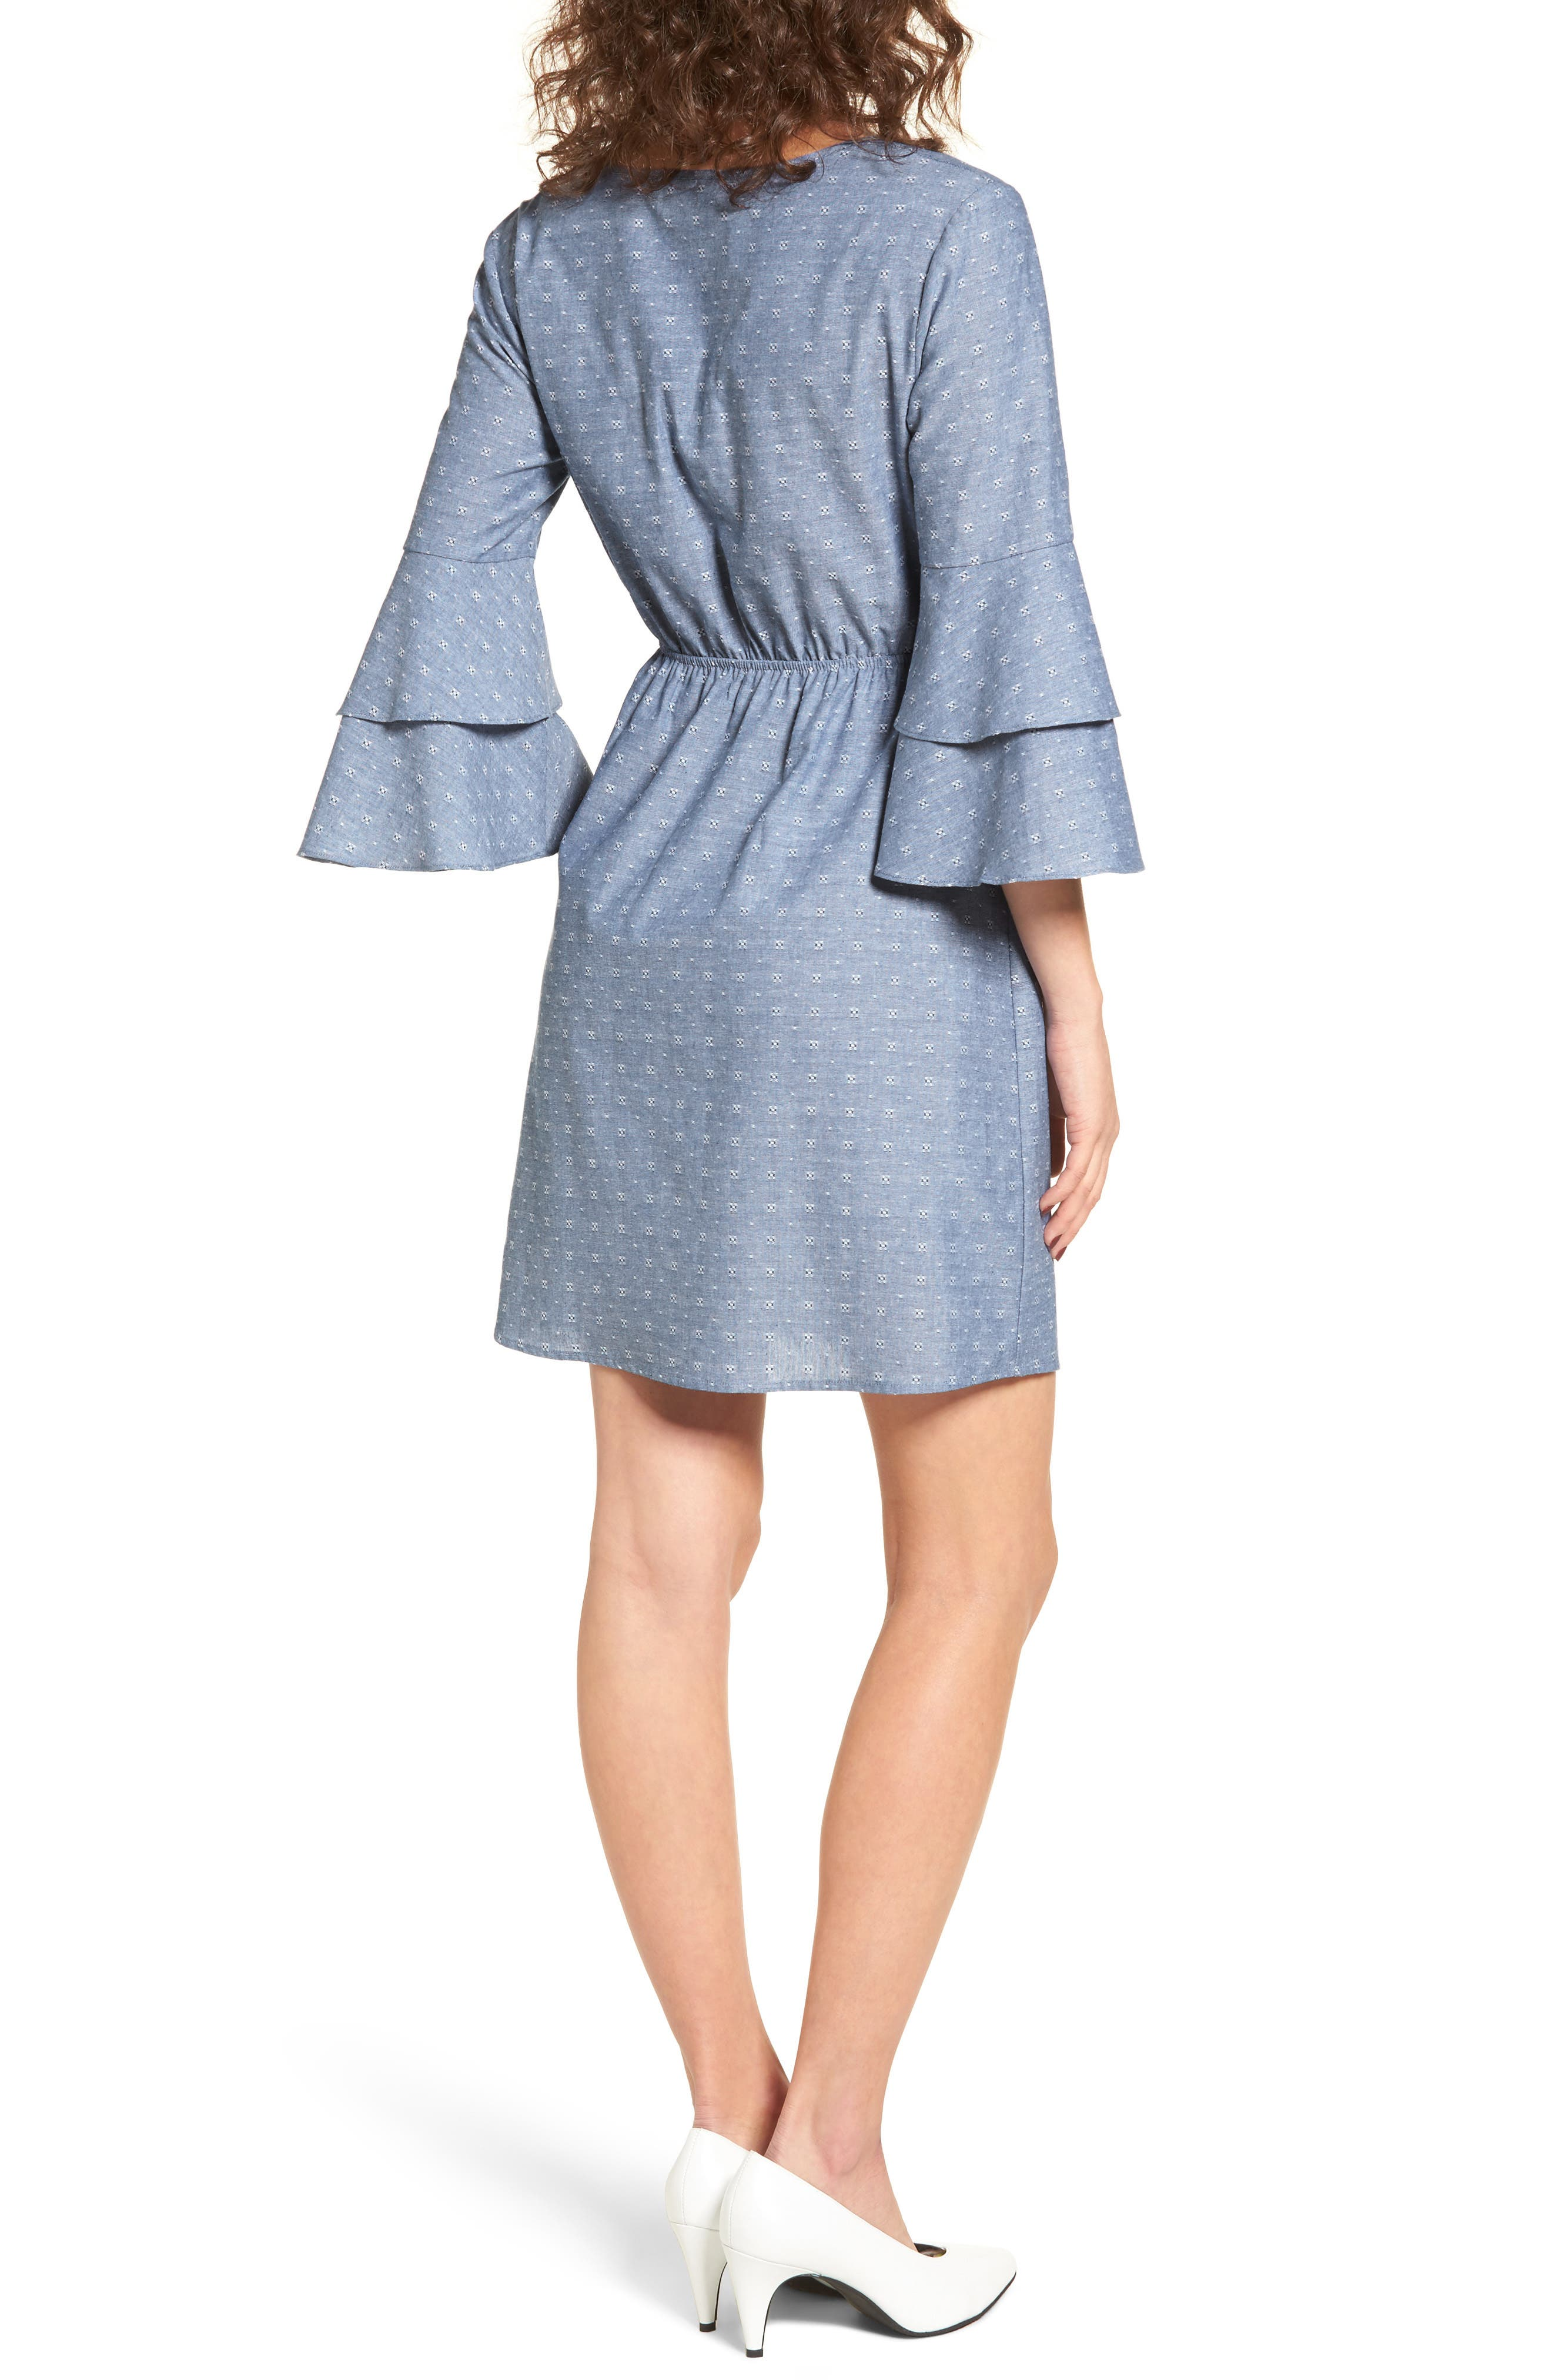 EVERLY,                             Cutout Tiered Sleeve Dress,                             Alternate thumbnail 2, color,                             400